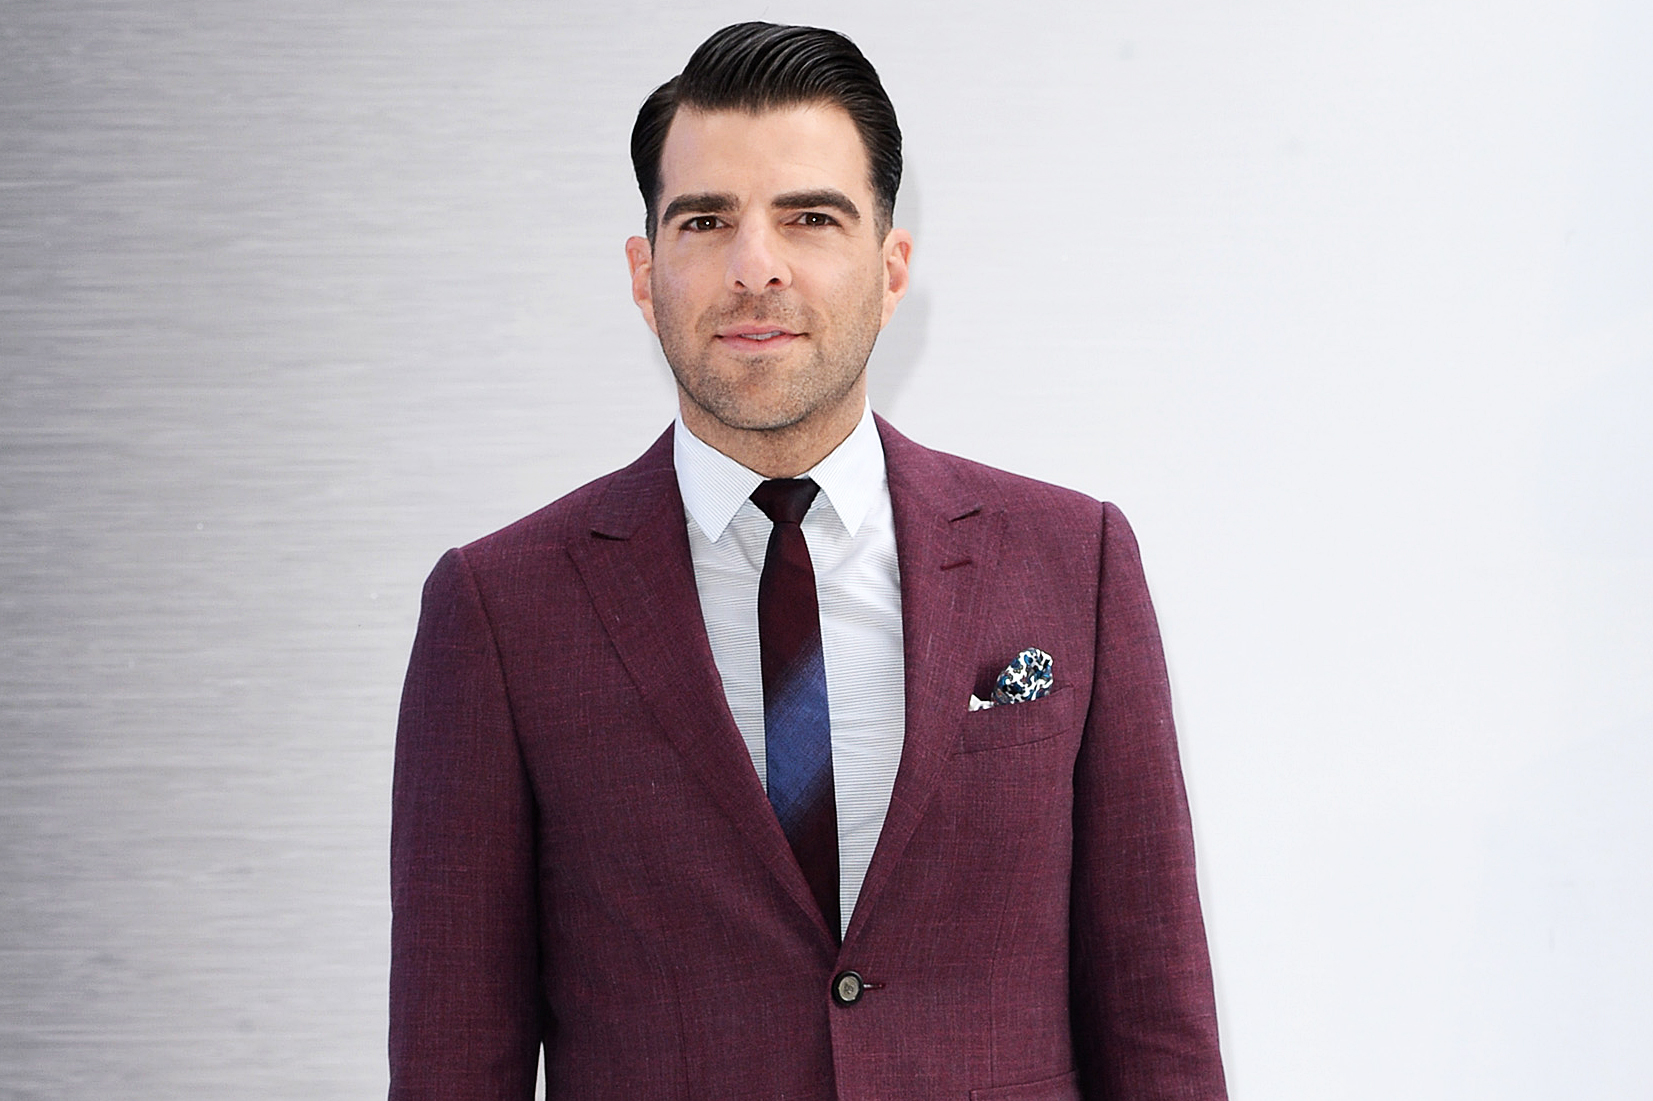 Zachary Quinto, on July 12, 2016 in London.